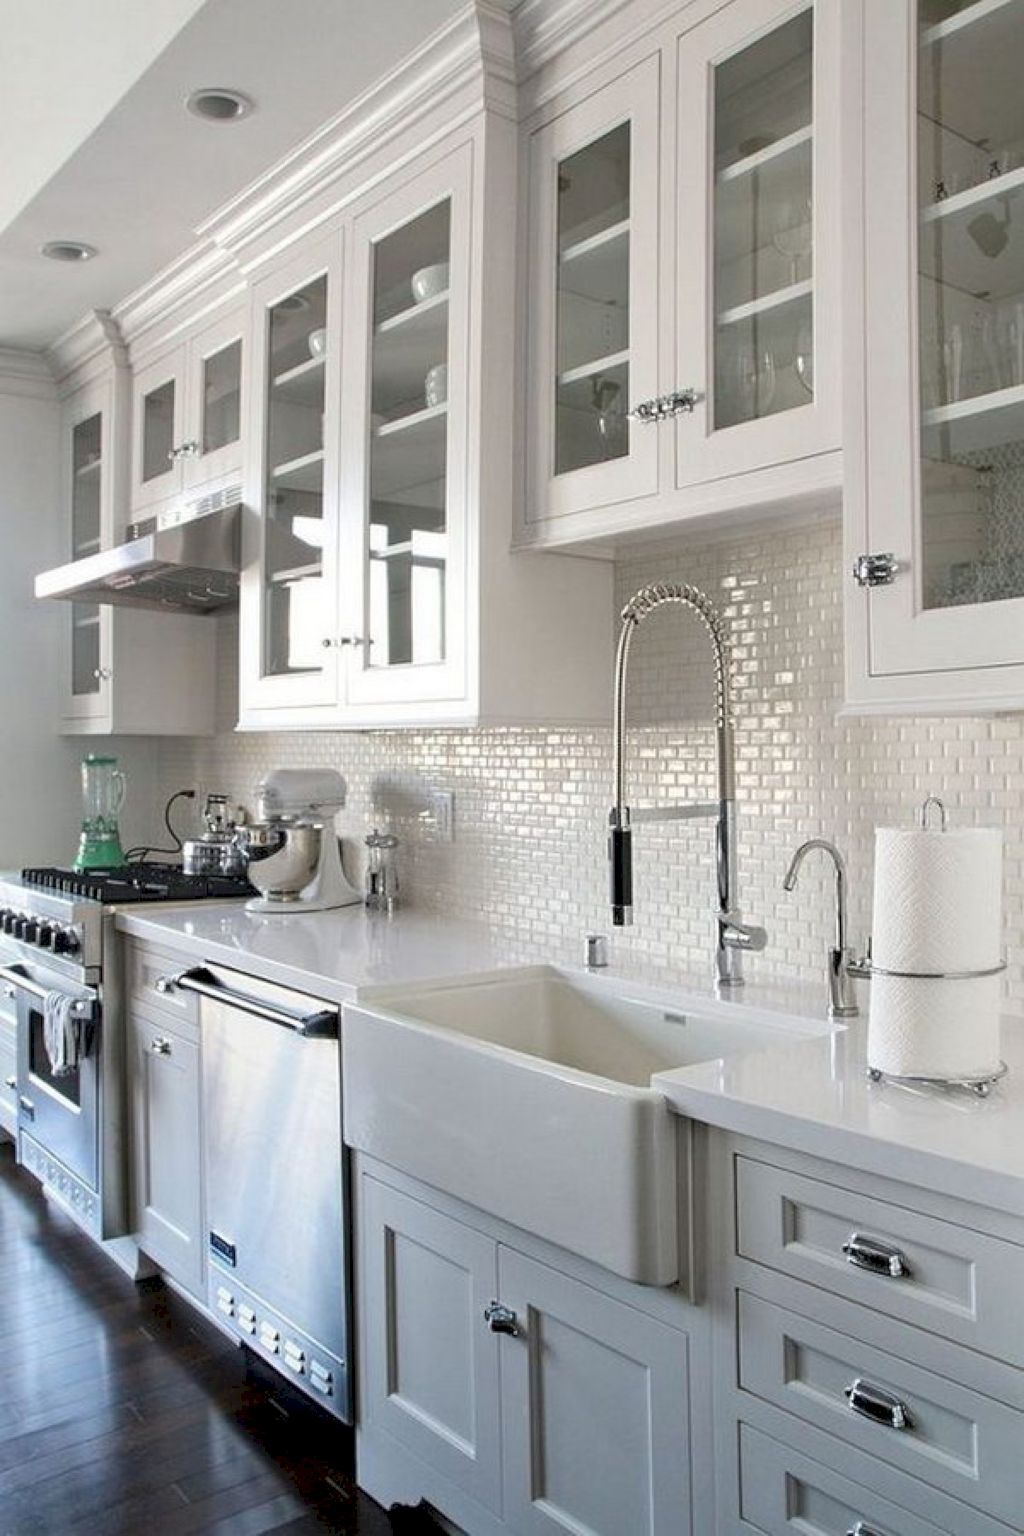 38 Beauty Kitchen Backsplash Design Ideas | Mueble cocina y Cocinas